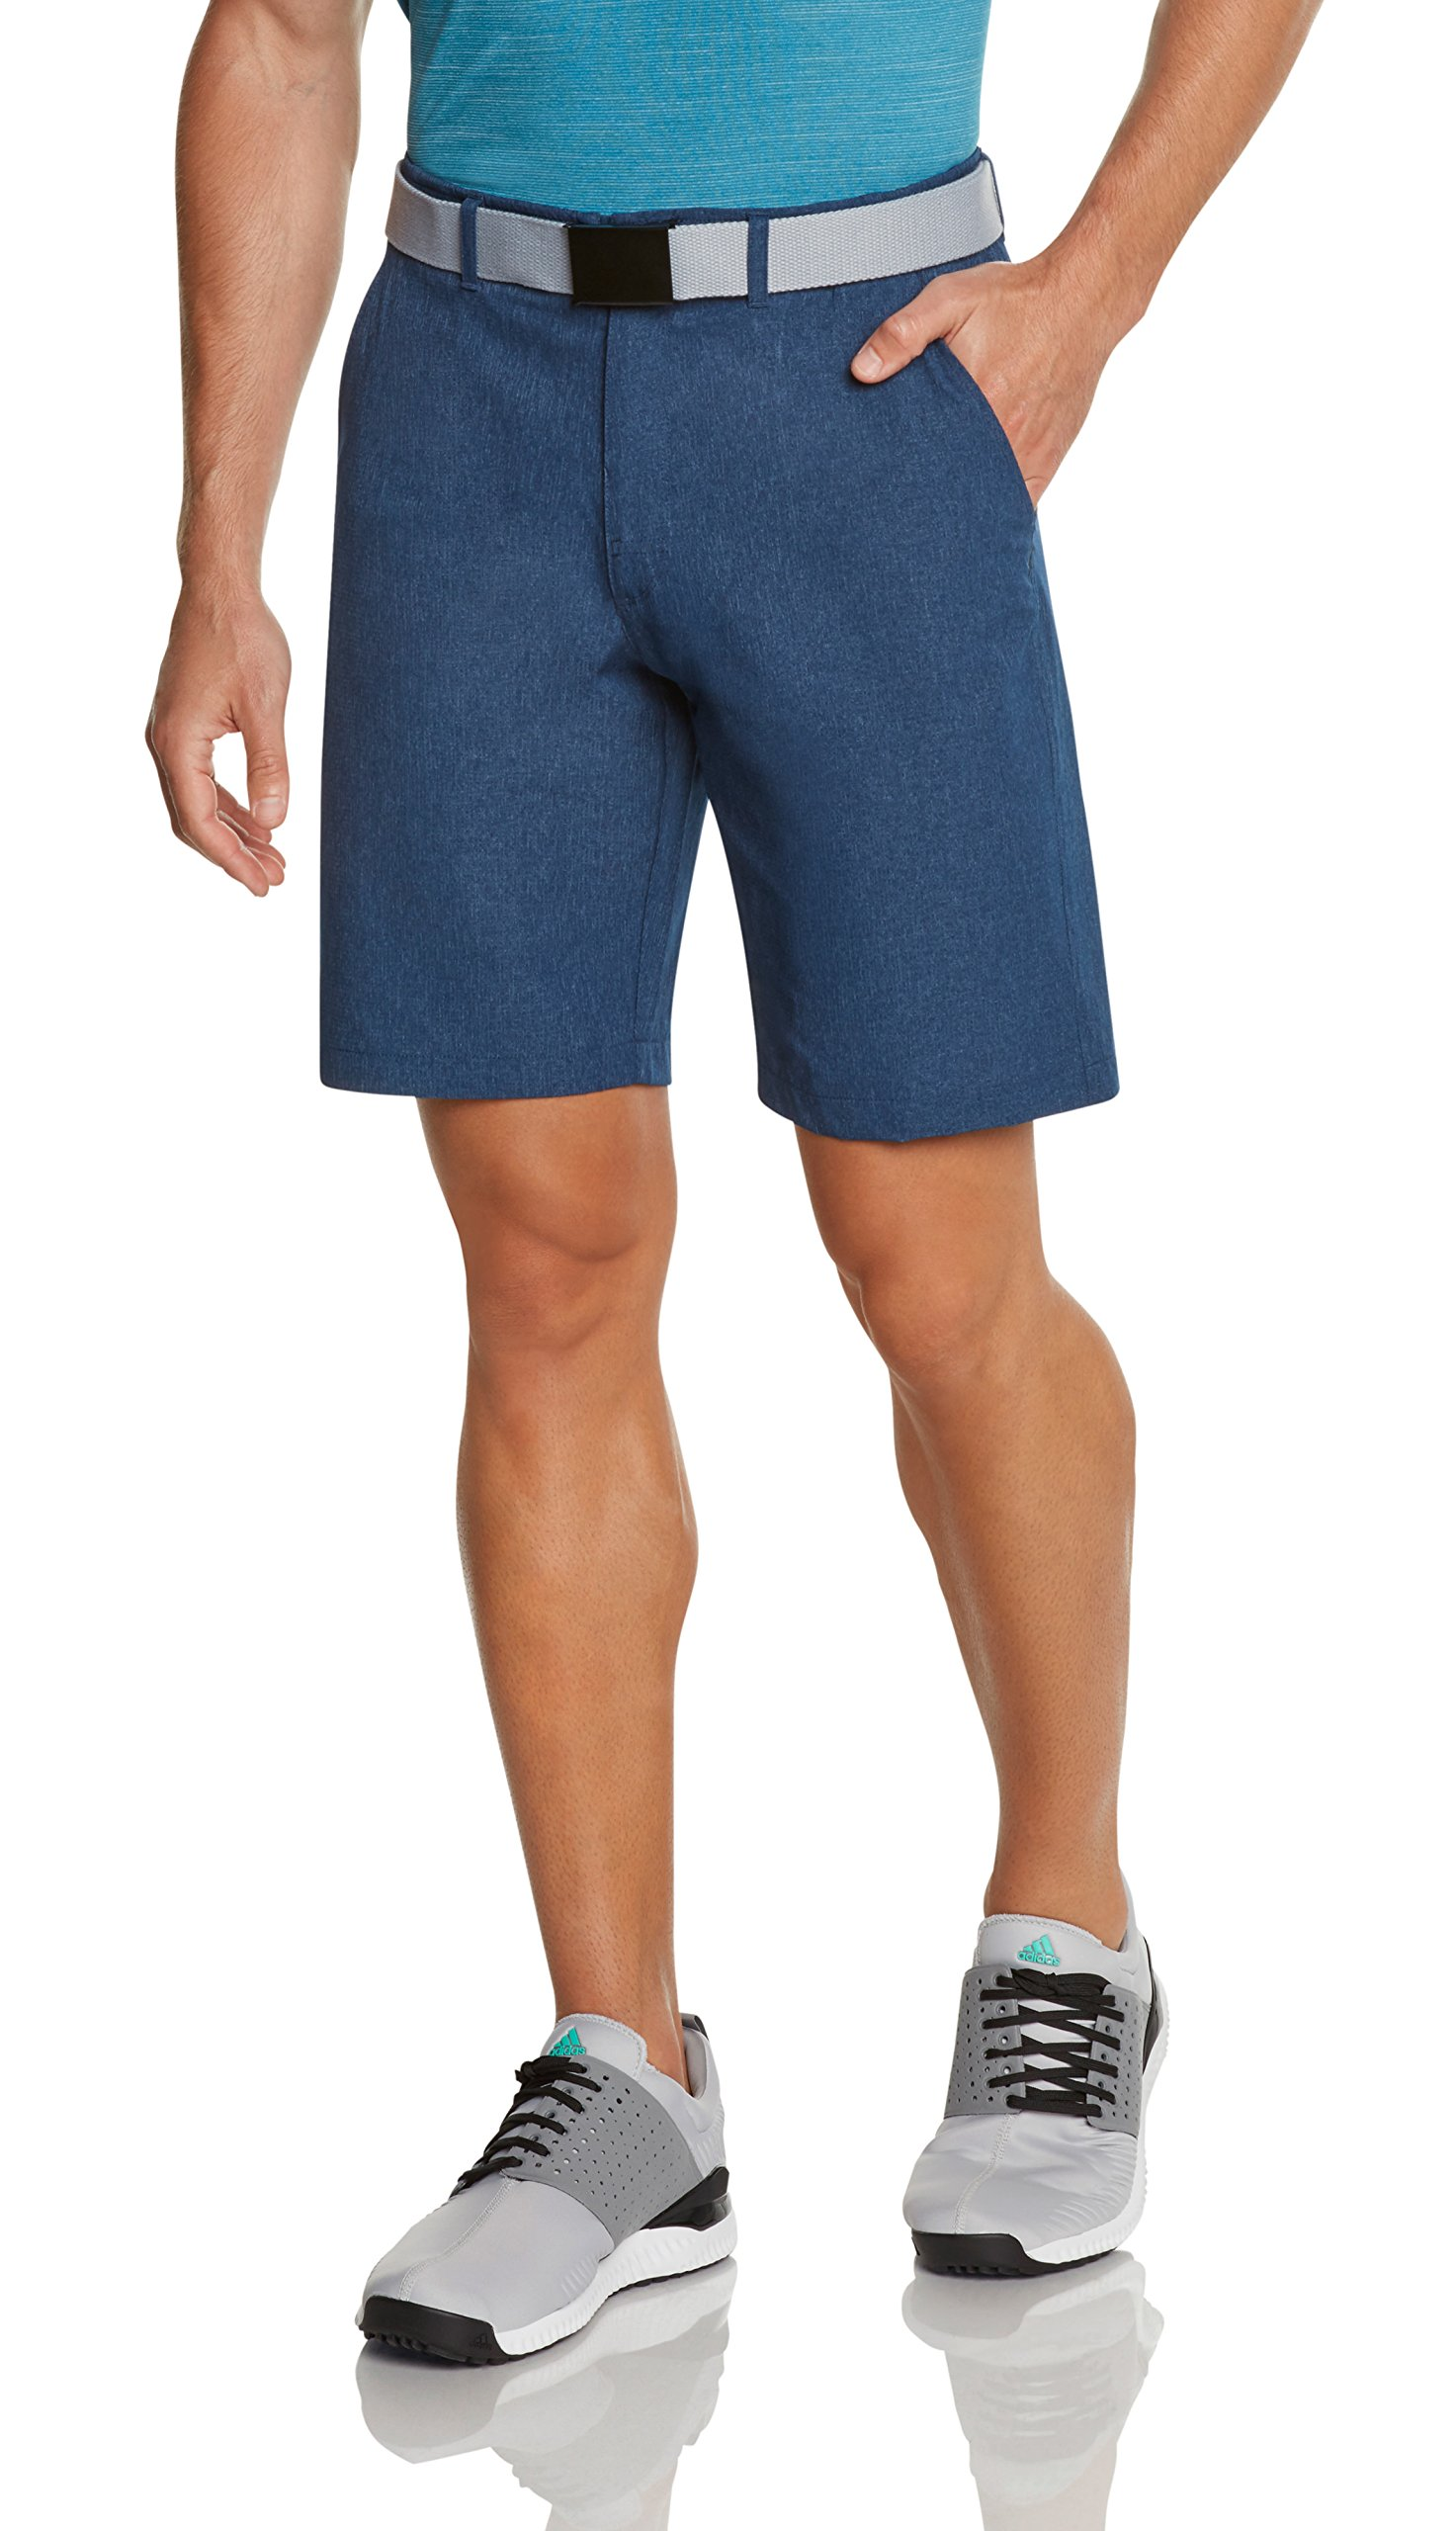 Jolt Gear Dry Fit Golf Shorts for Men – Casual Mens Shorts Moisture Wicking - Men's Chino Shorts with Elastic Waistband by Jolt Gear (Image #2)